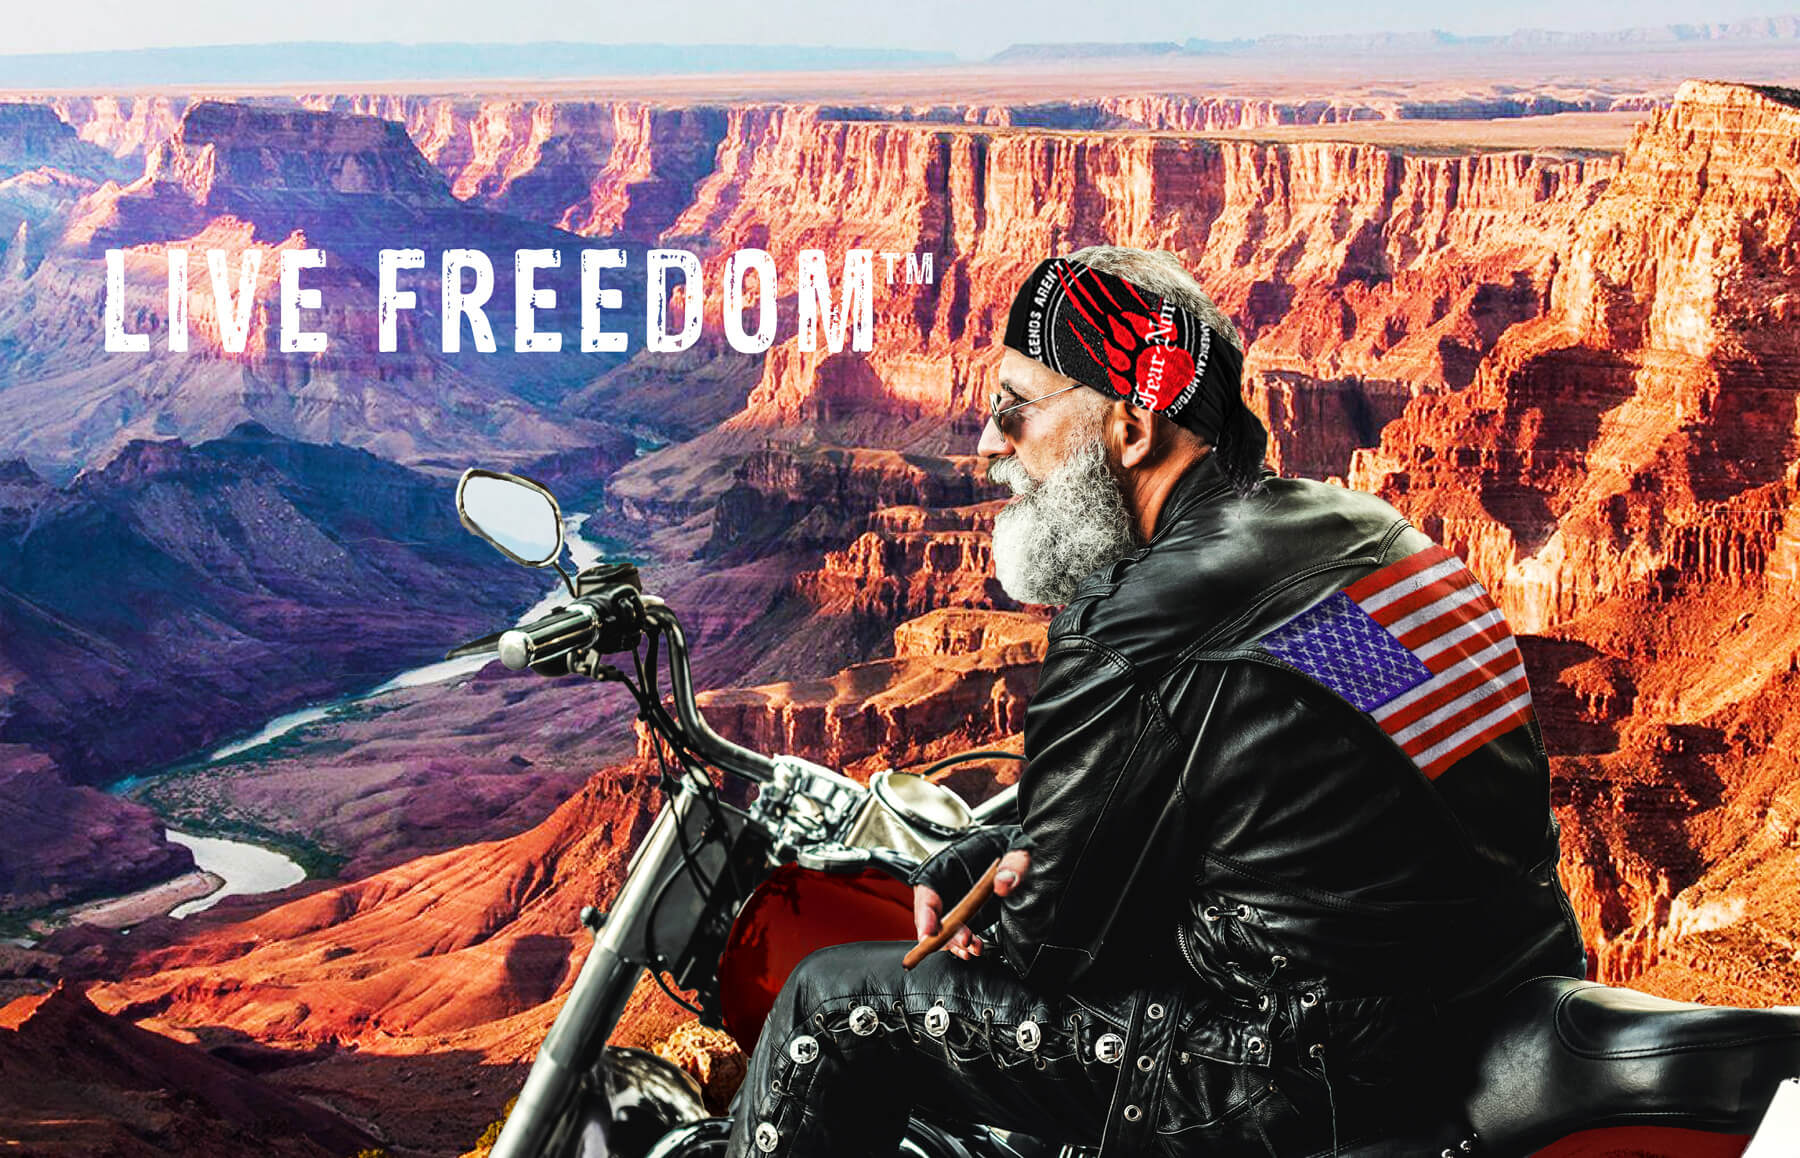 fear none motorcycle gear ships worldwide